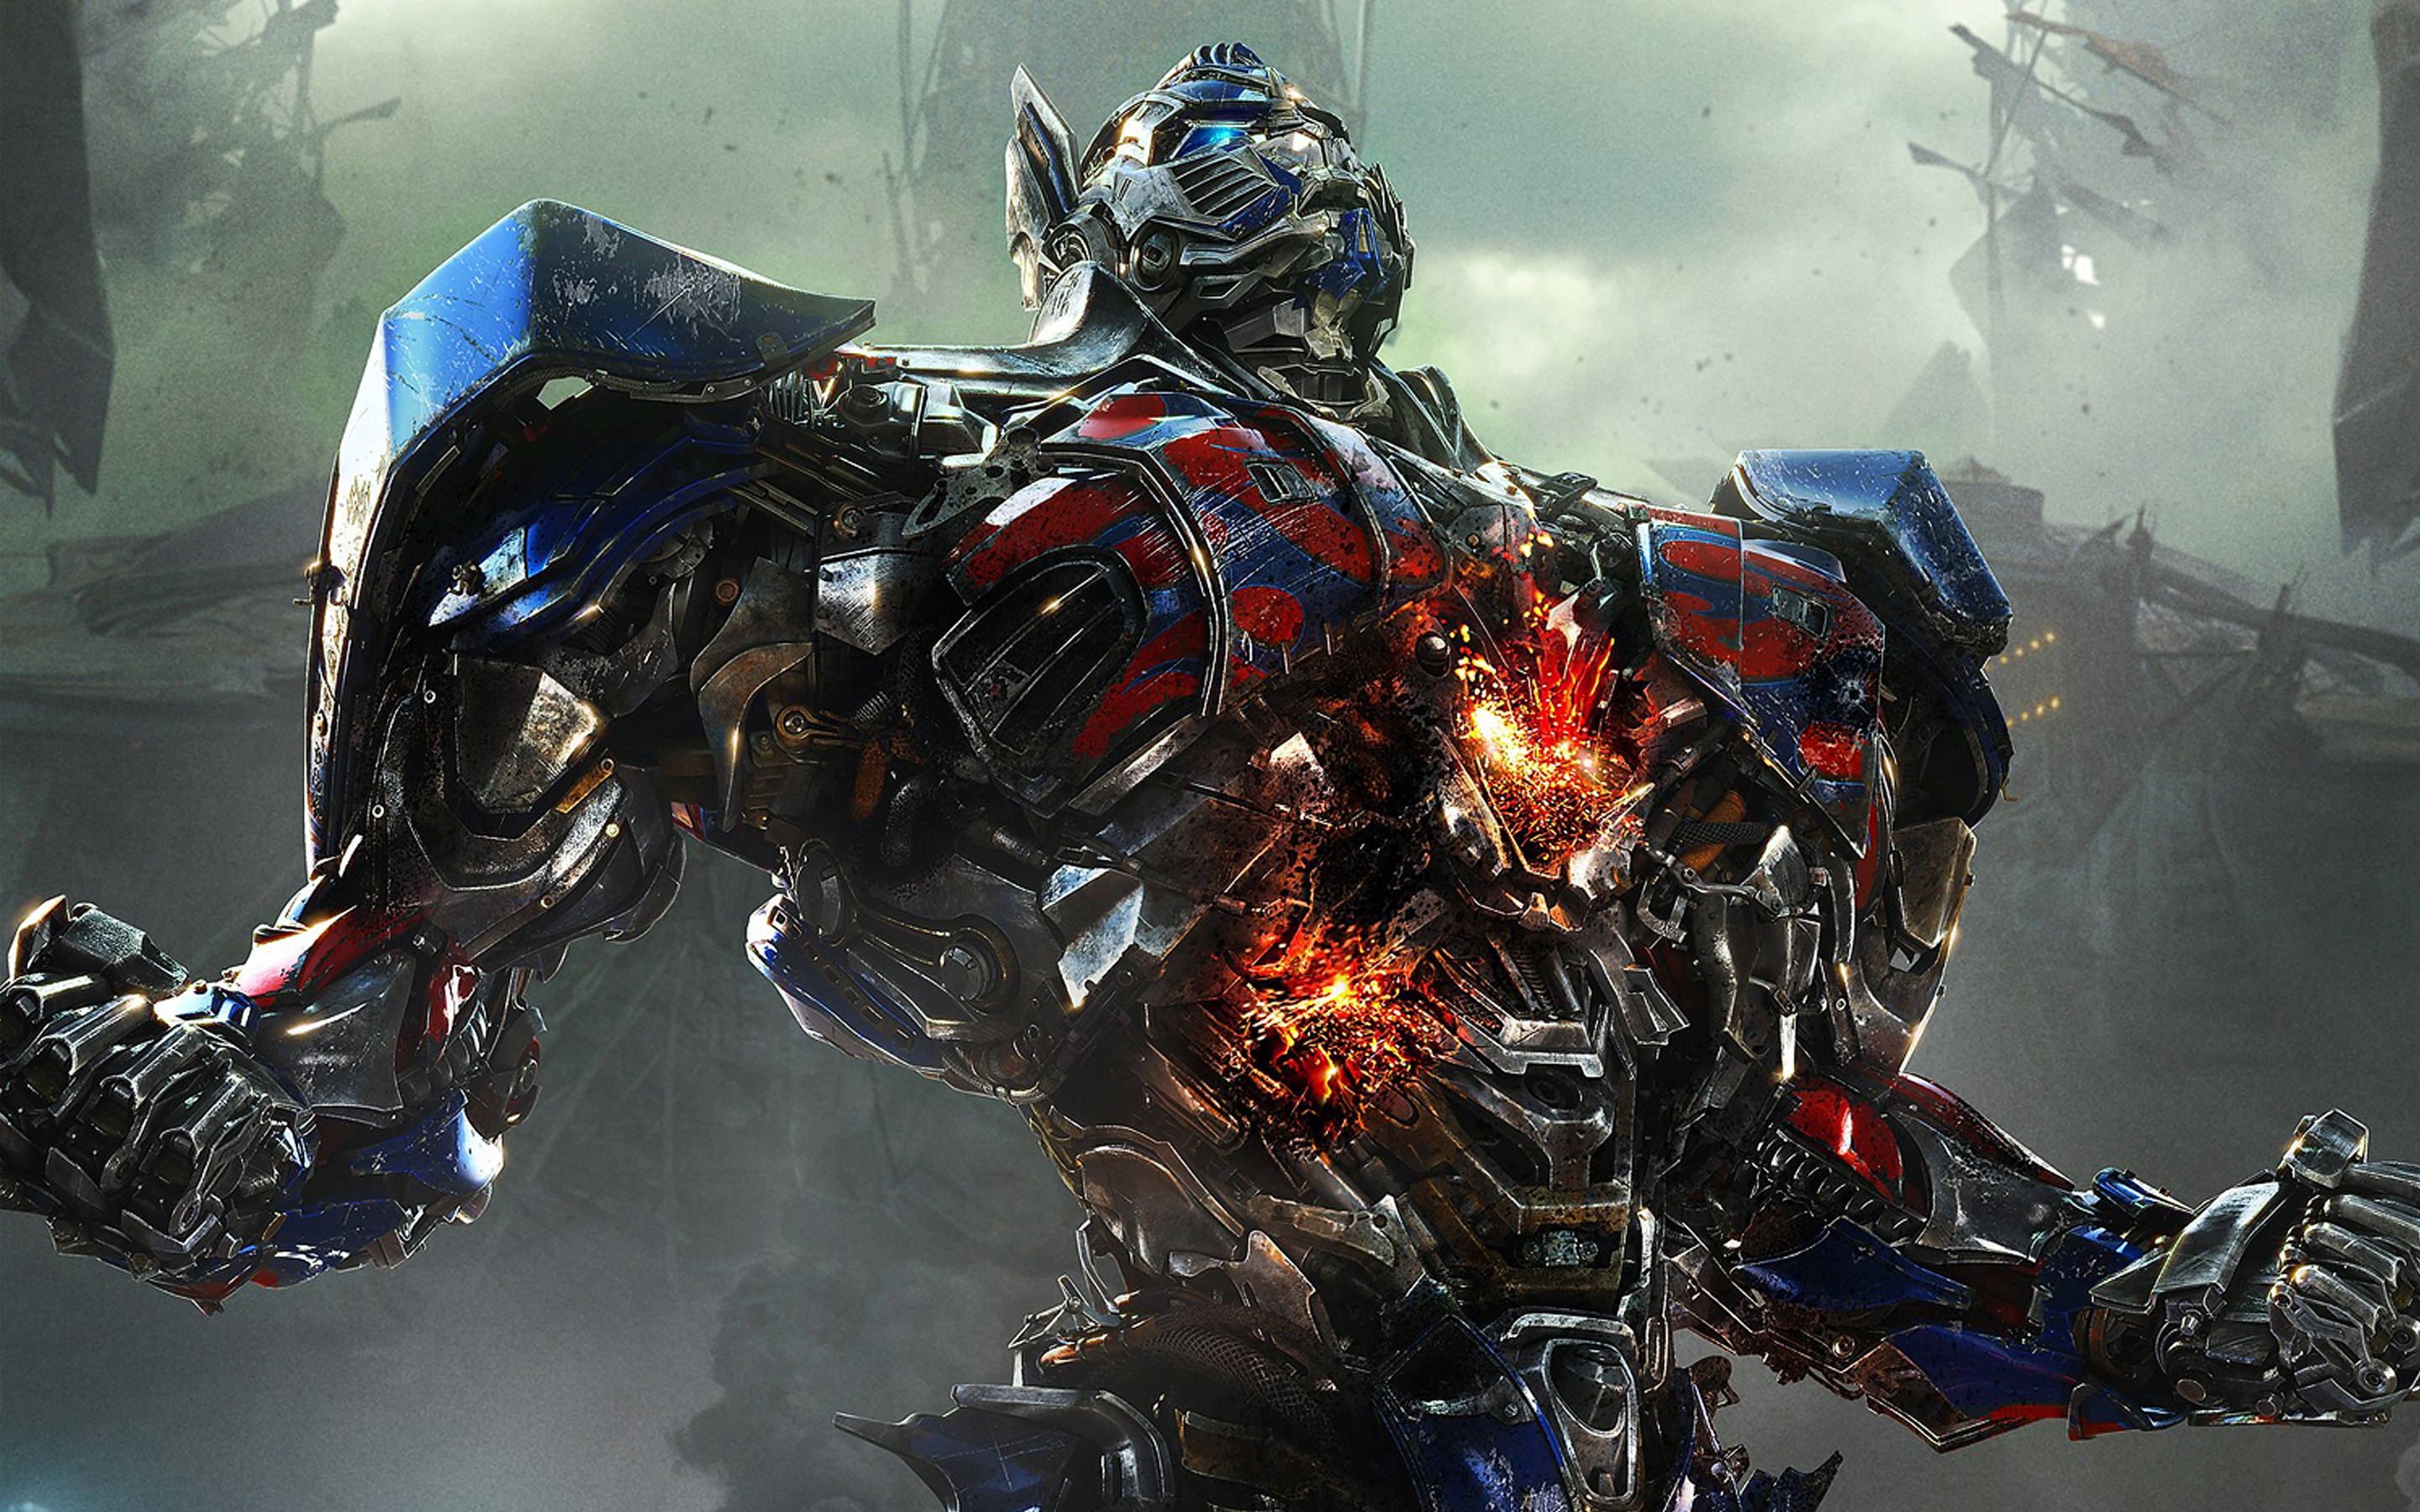 HQ Age Of Extinction Wallpapers | File 2090.8Kb